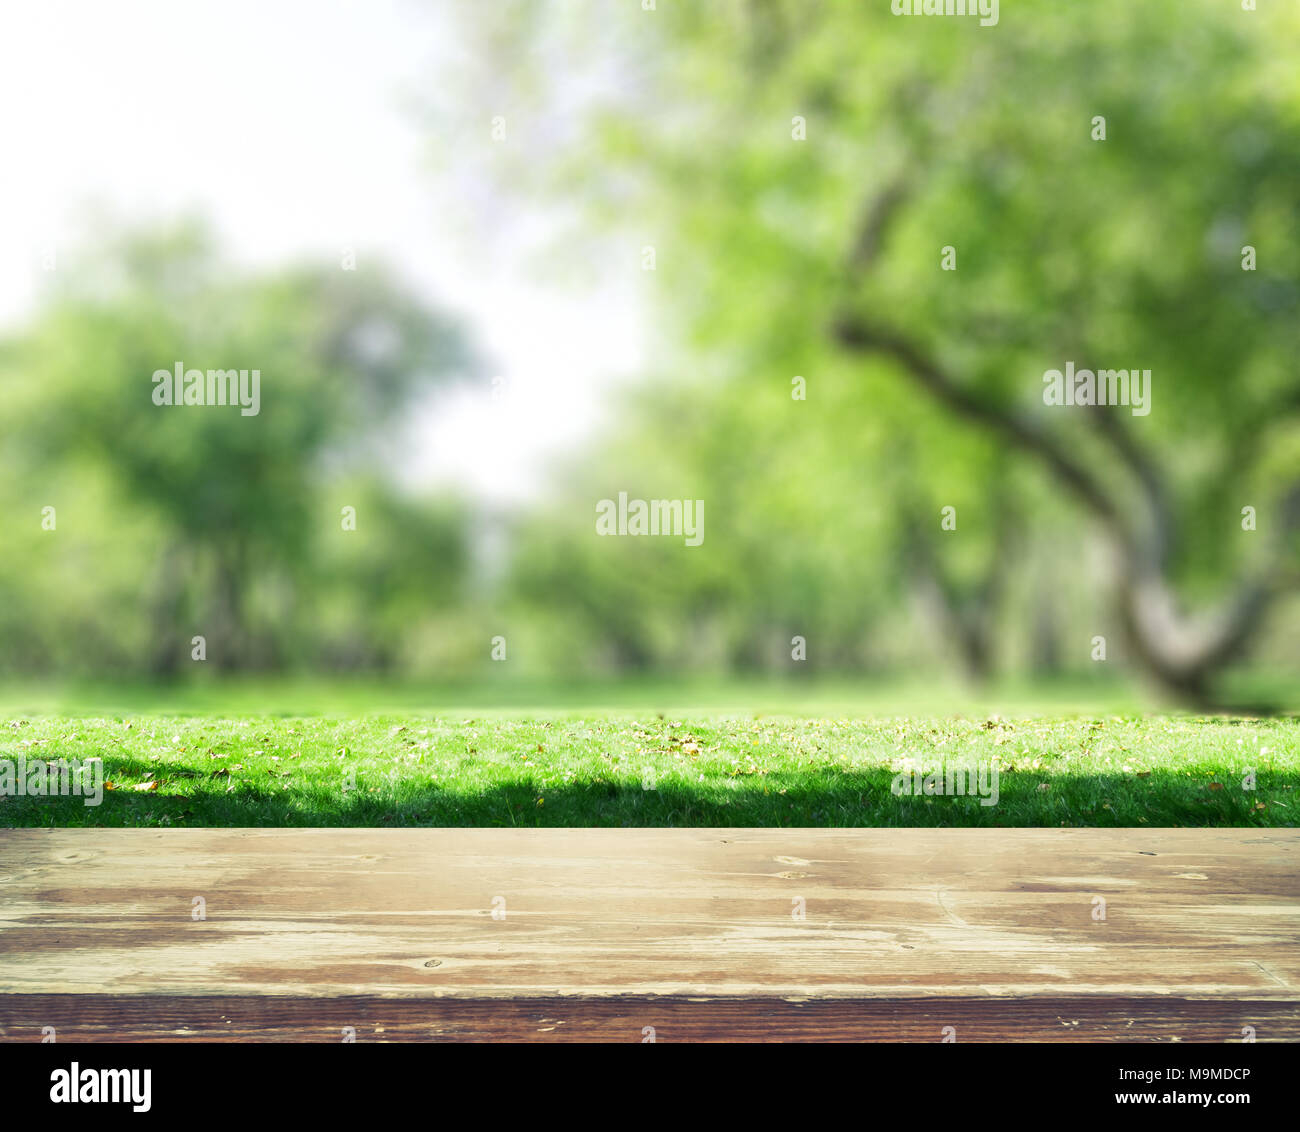 Blur Background High Resolution Stock Photography And Images Alamy